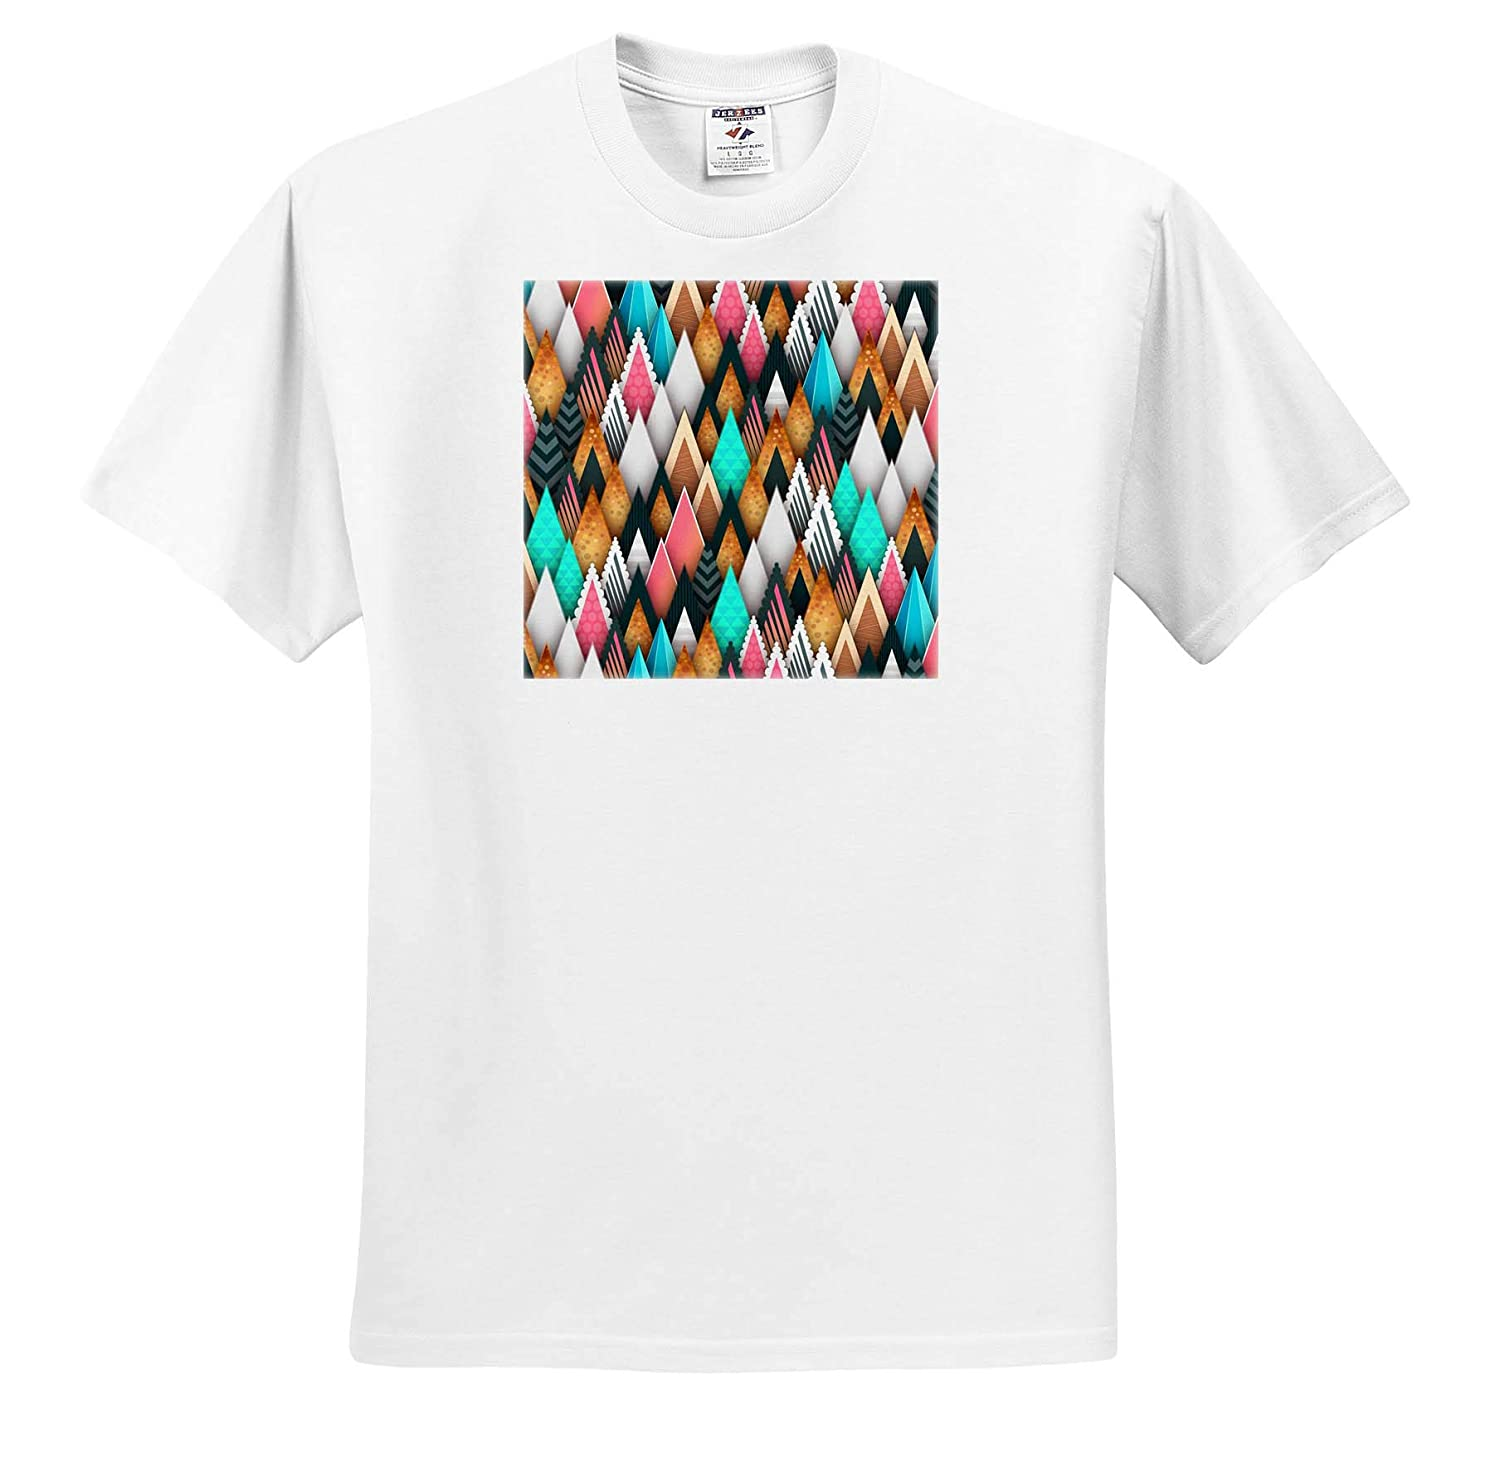 Geometric Abstract 3dRose Lens Art by Florene T-Shirts Image of Rows of Colored Triangle Tops